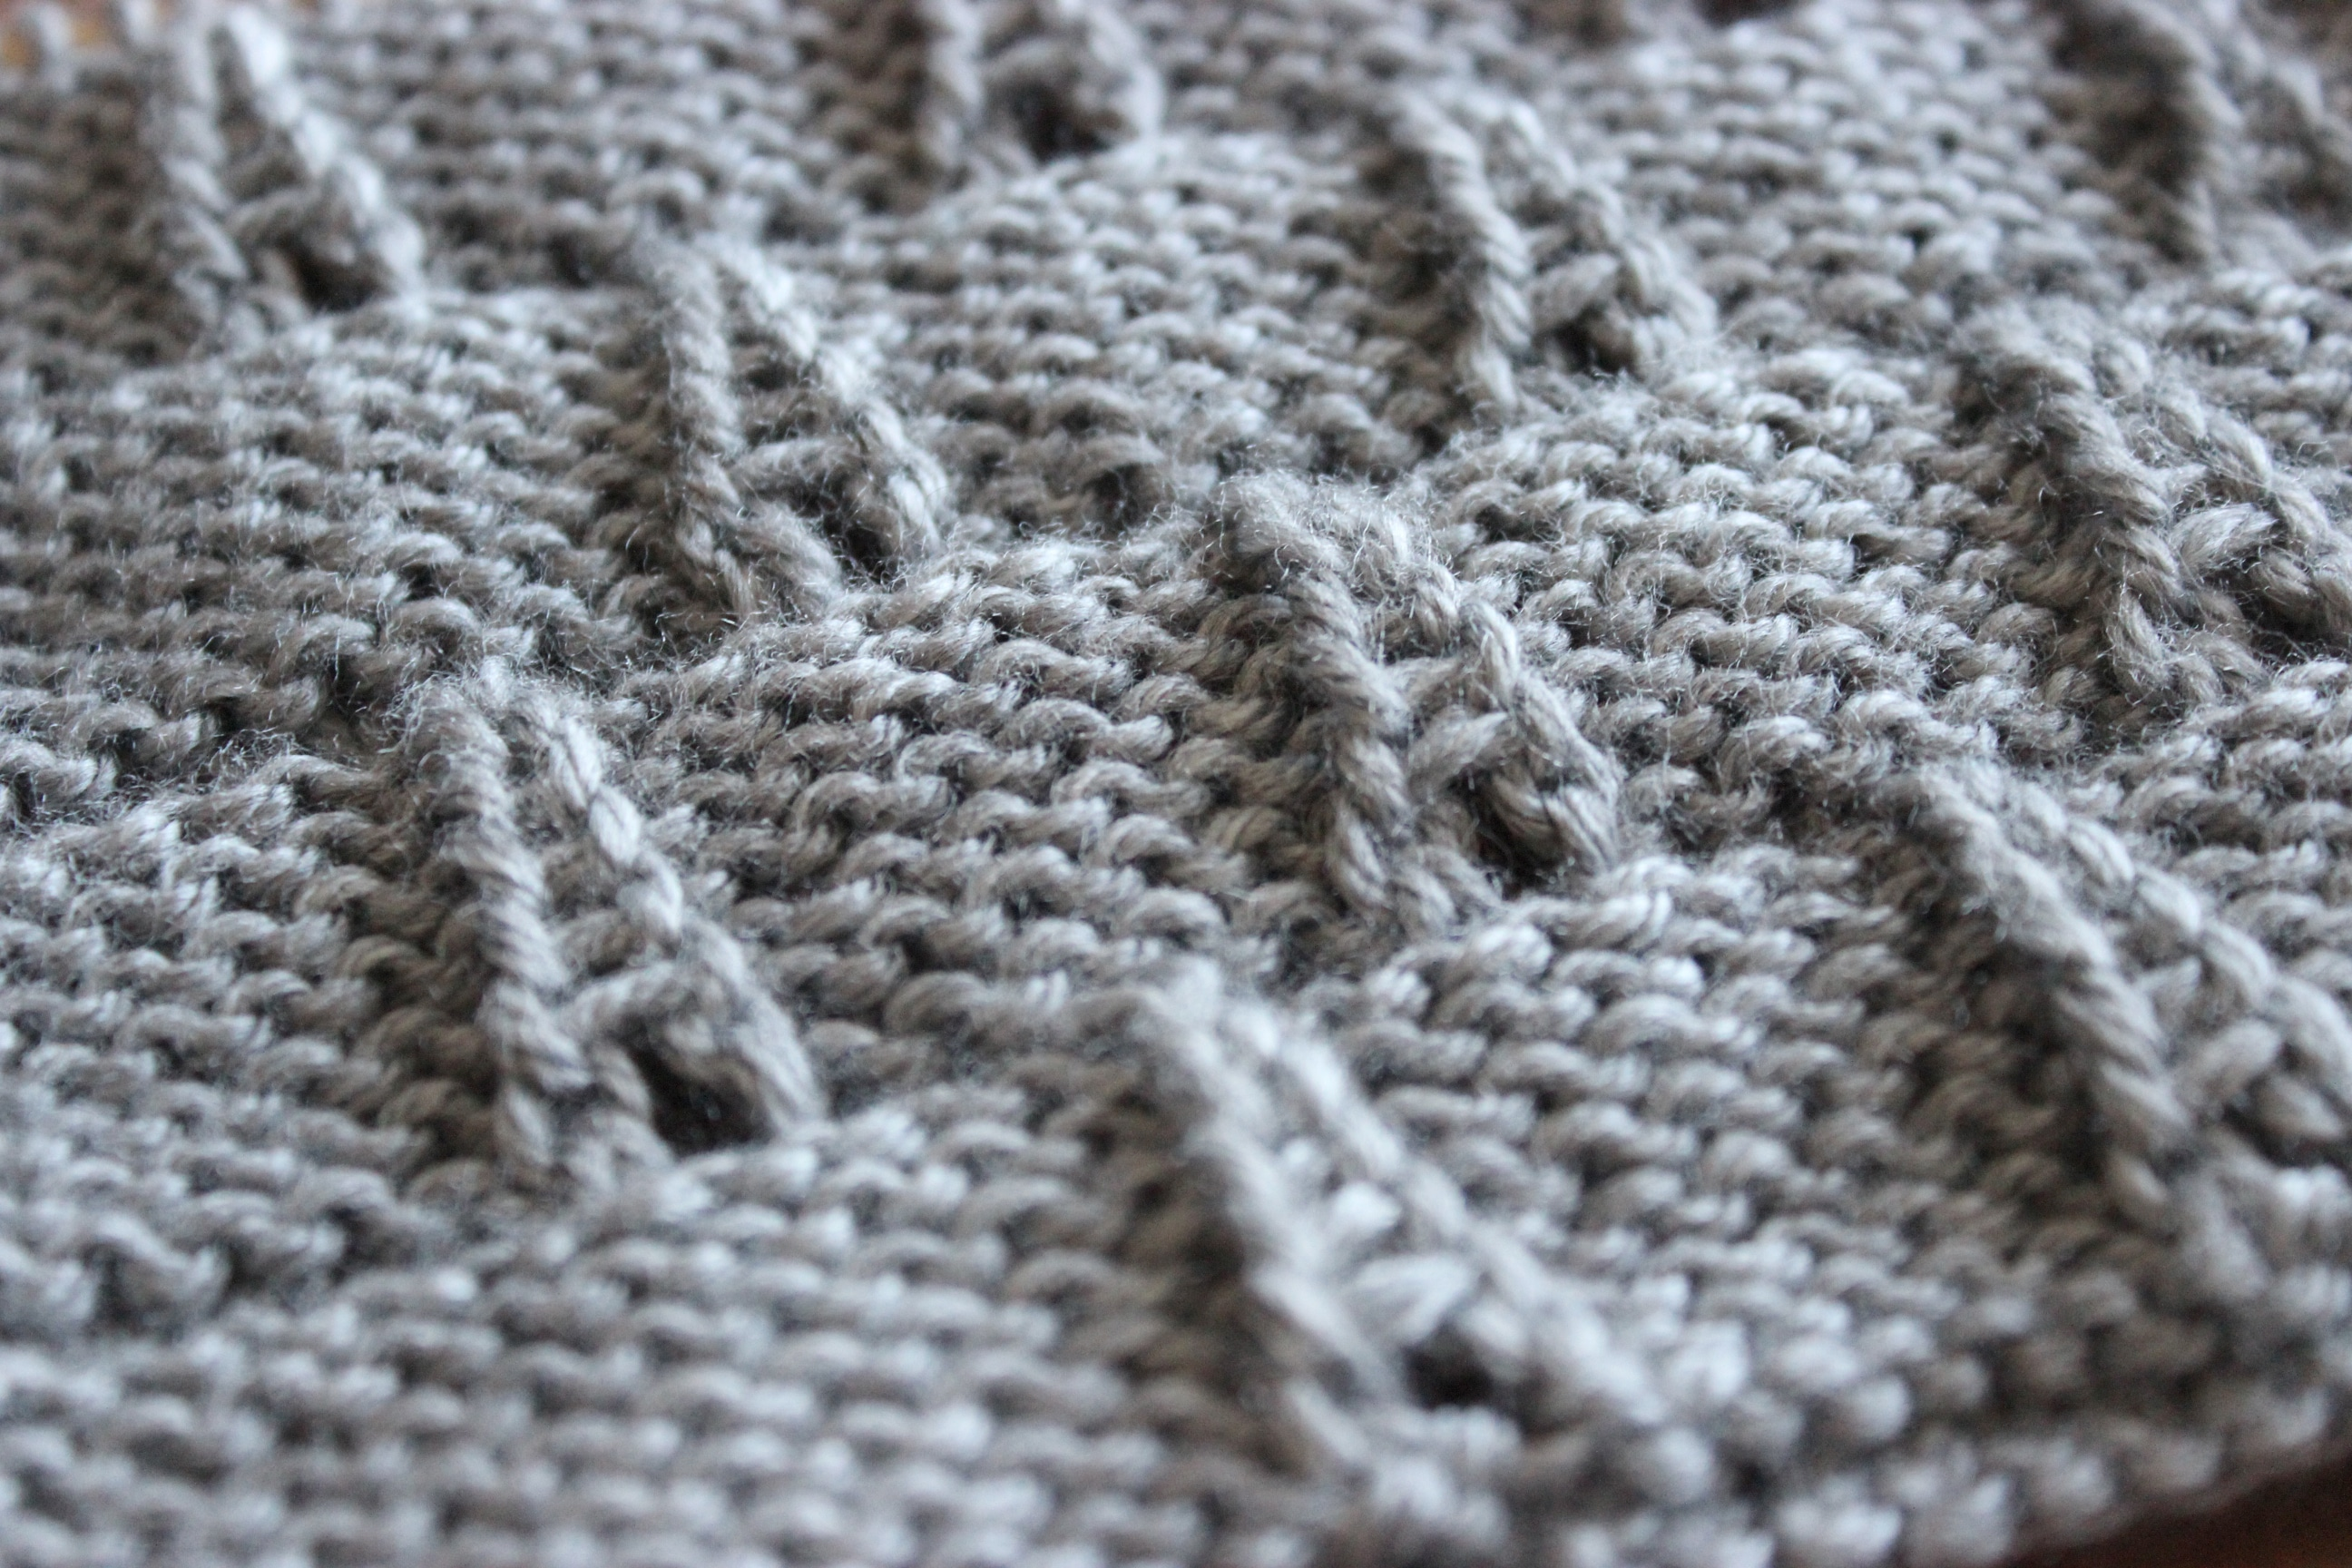 Knitting Stitches Double Yarn Over : How to Knit the EIFFEL TOWER Eyelet Stitch Pattern Studio Knit